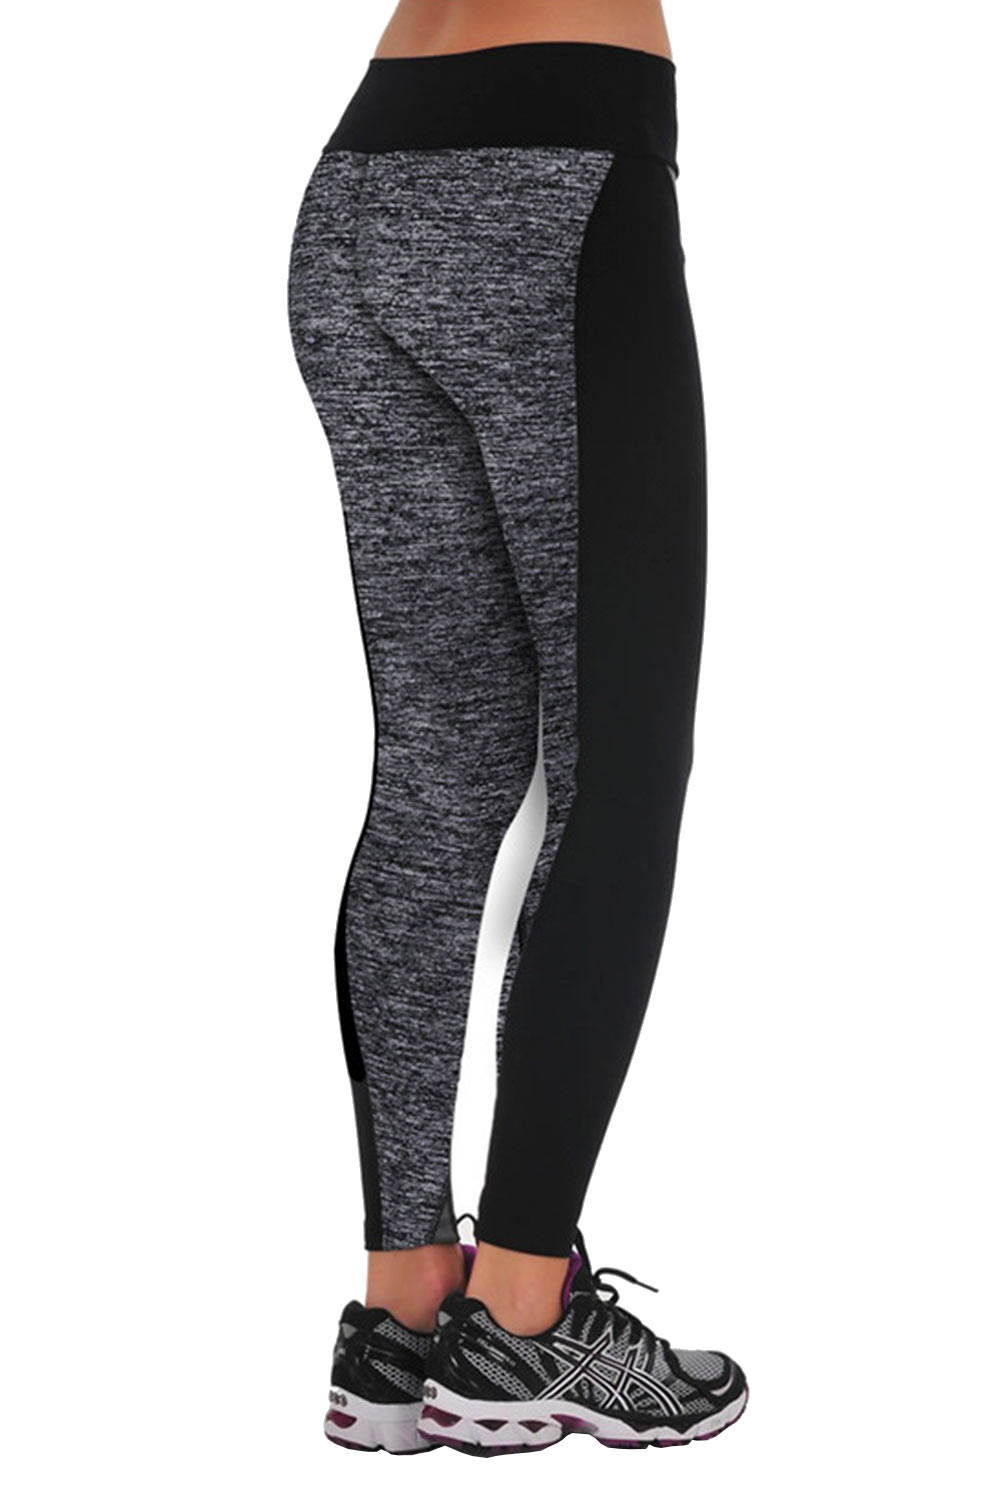 Leggings Solid & Pattern - Designer Leggings - Carbon38New Arrivals · Best Sellers · Full Support · Stay Connected.